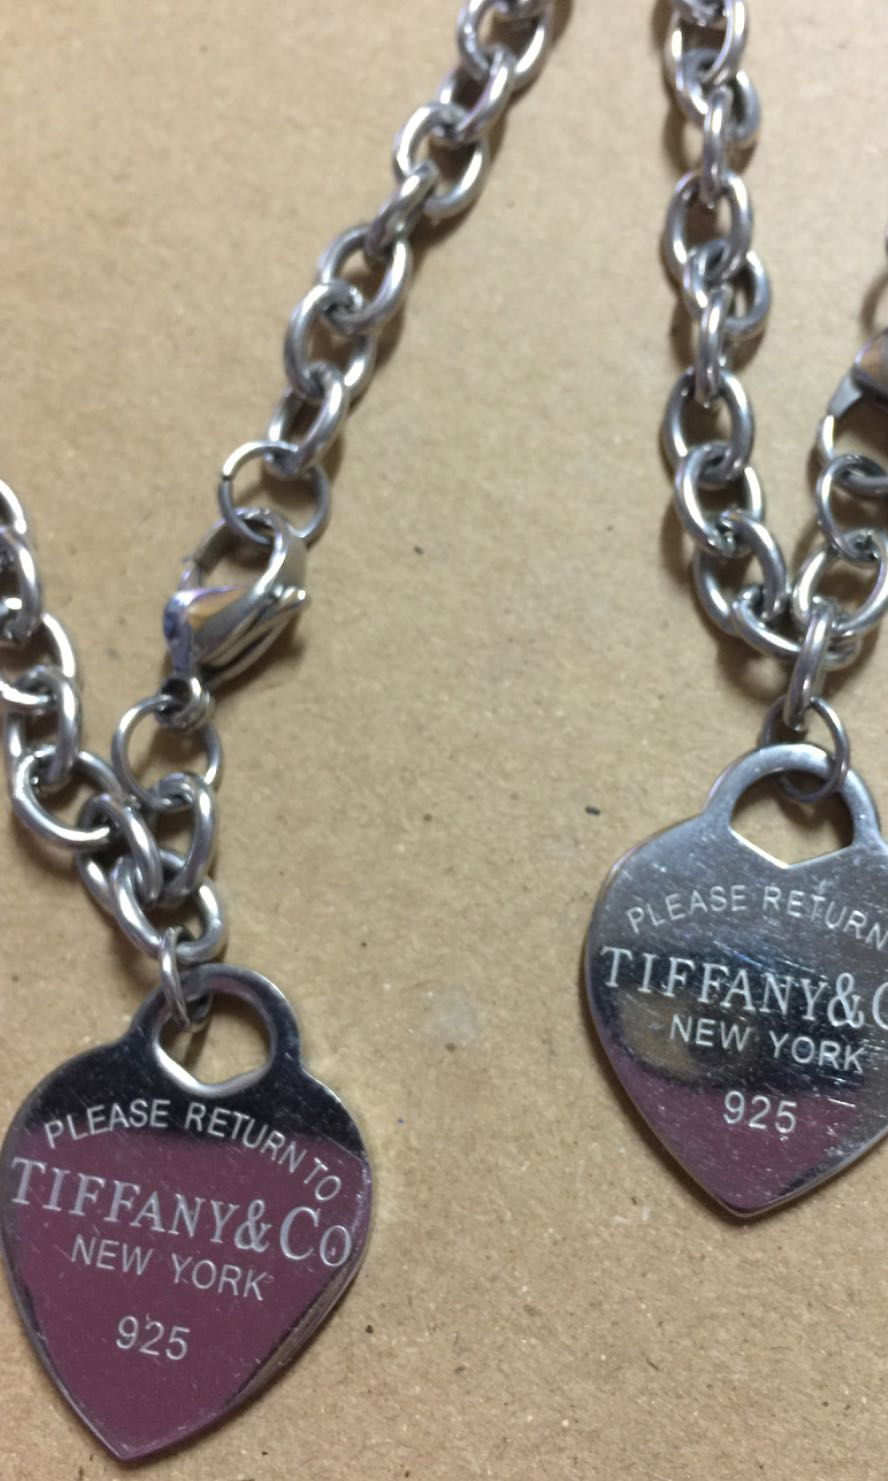 40c77cd451dca Tiffany and Co. necklace and bracelet